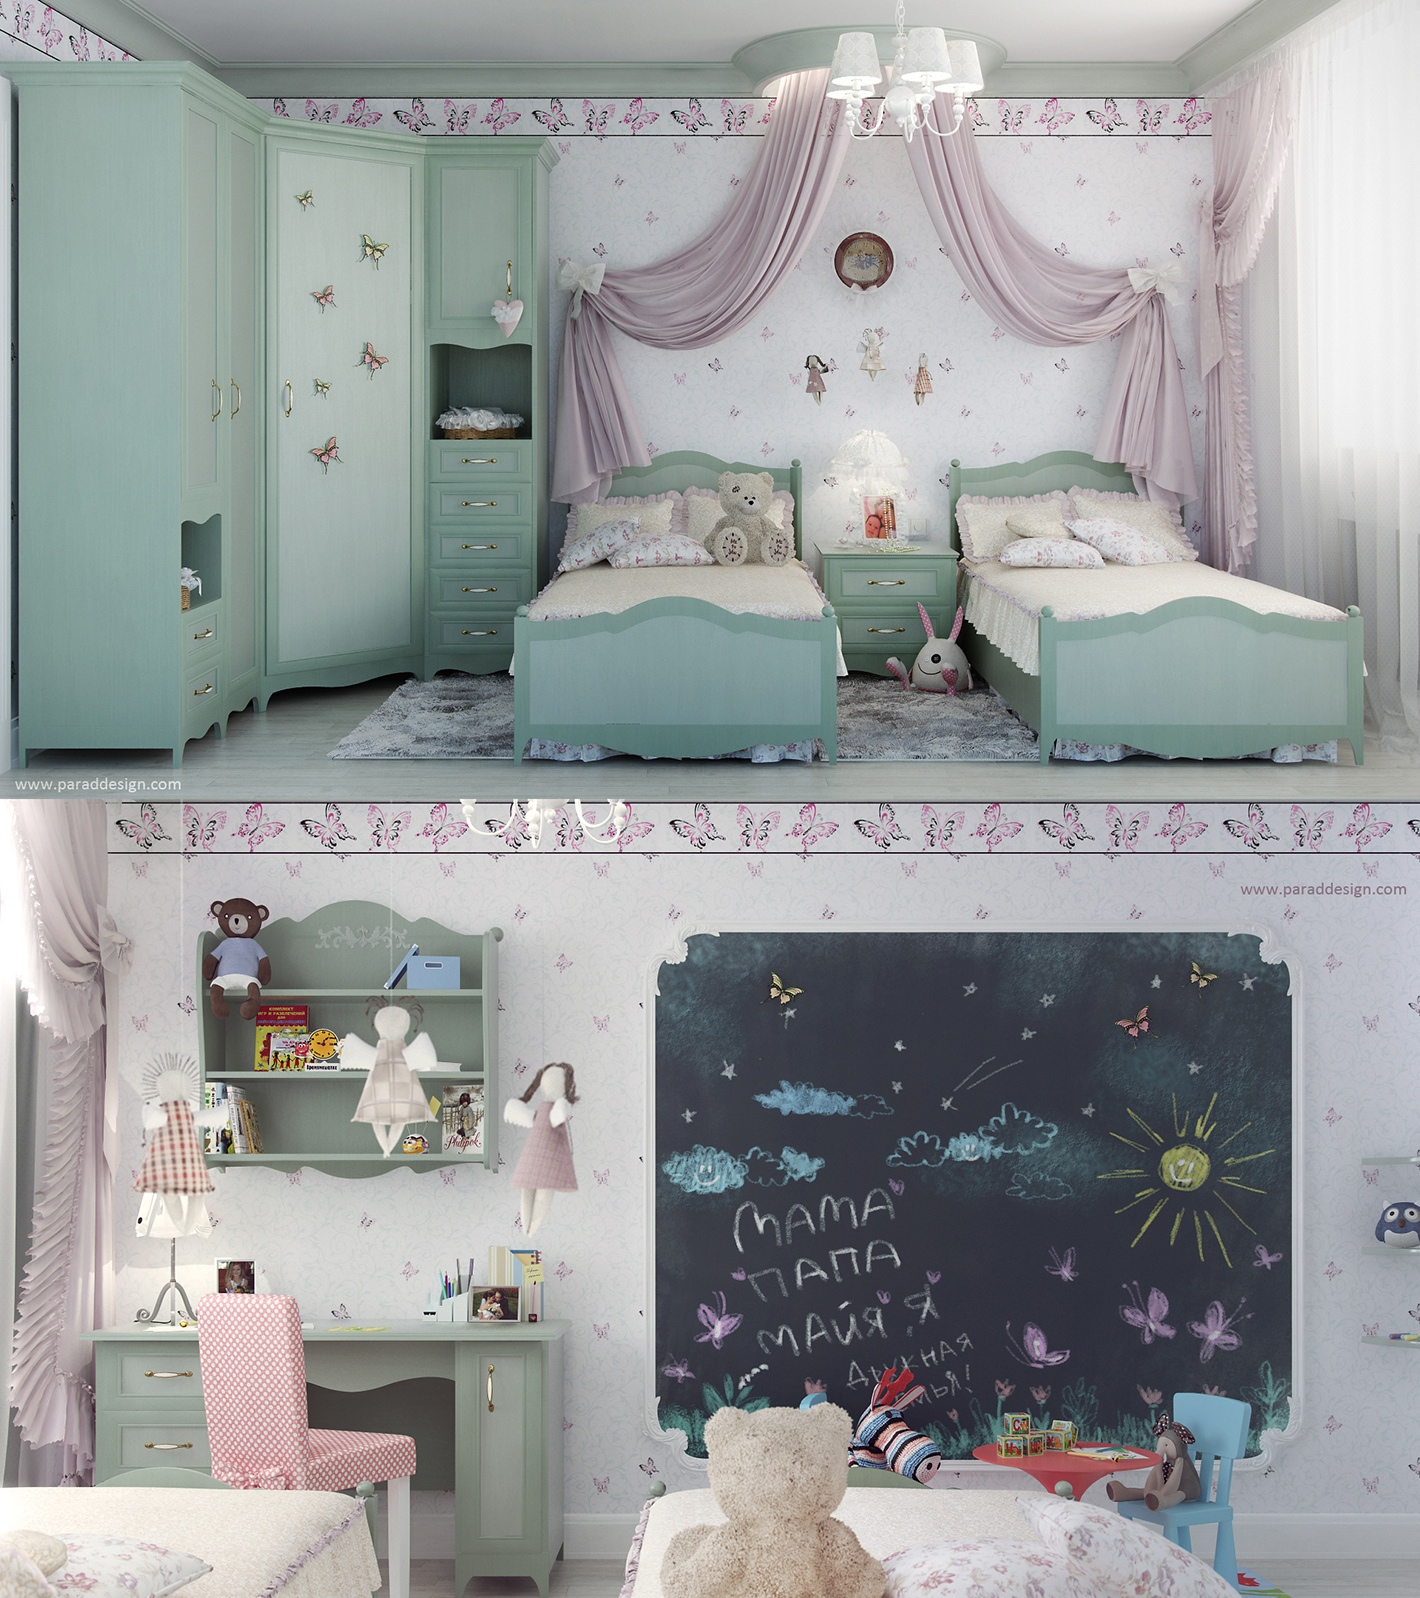 2 Little Girls Bedroom 7interior Design Ideas